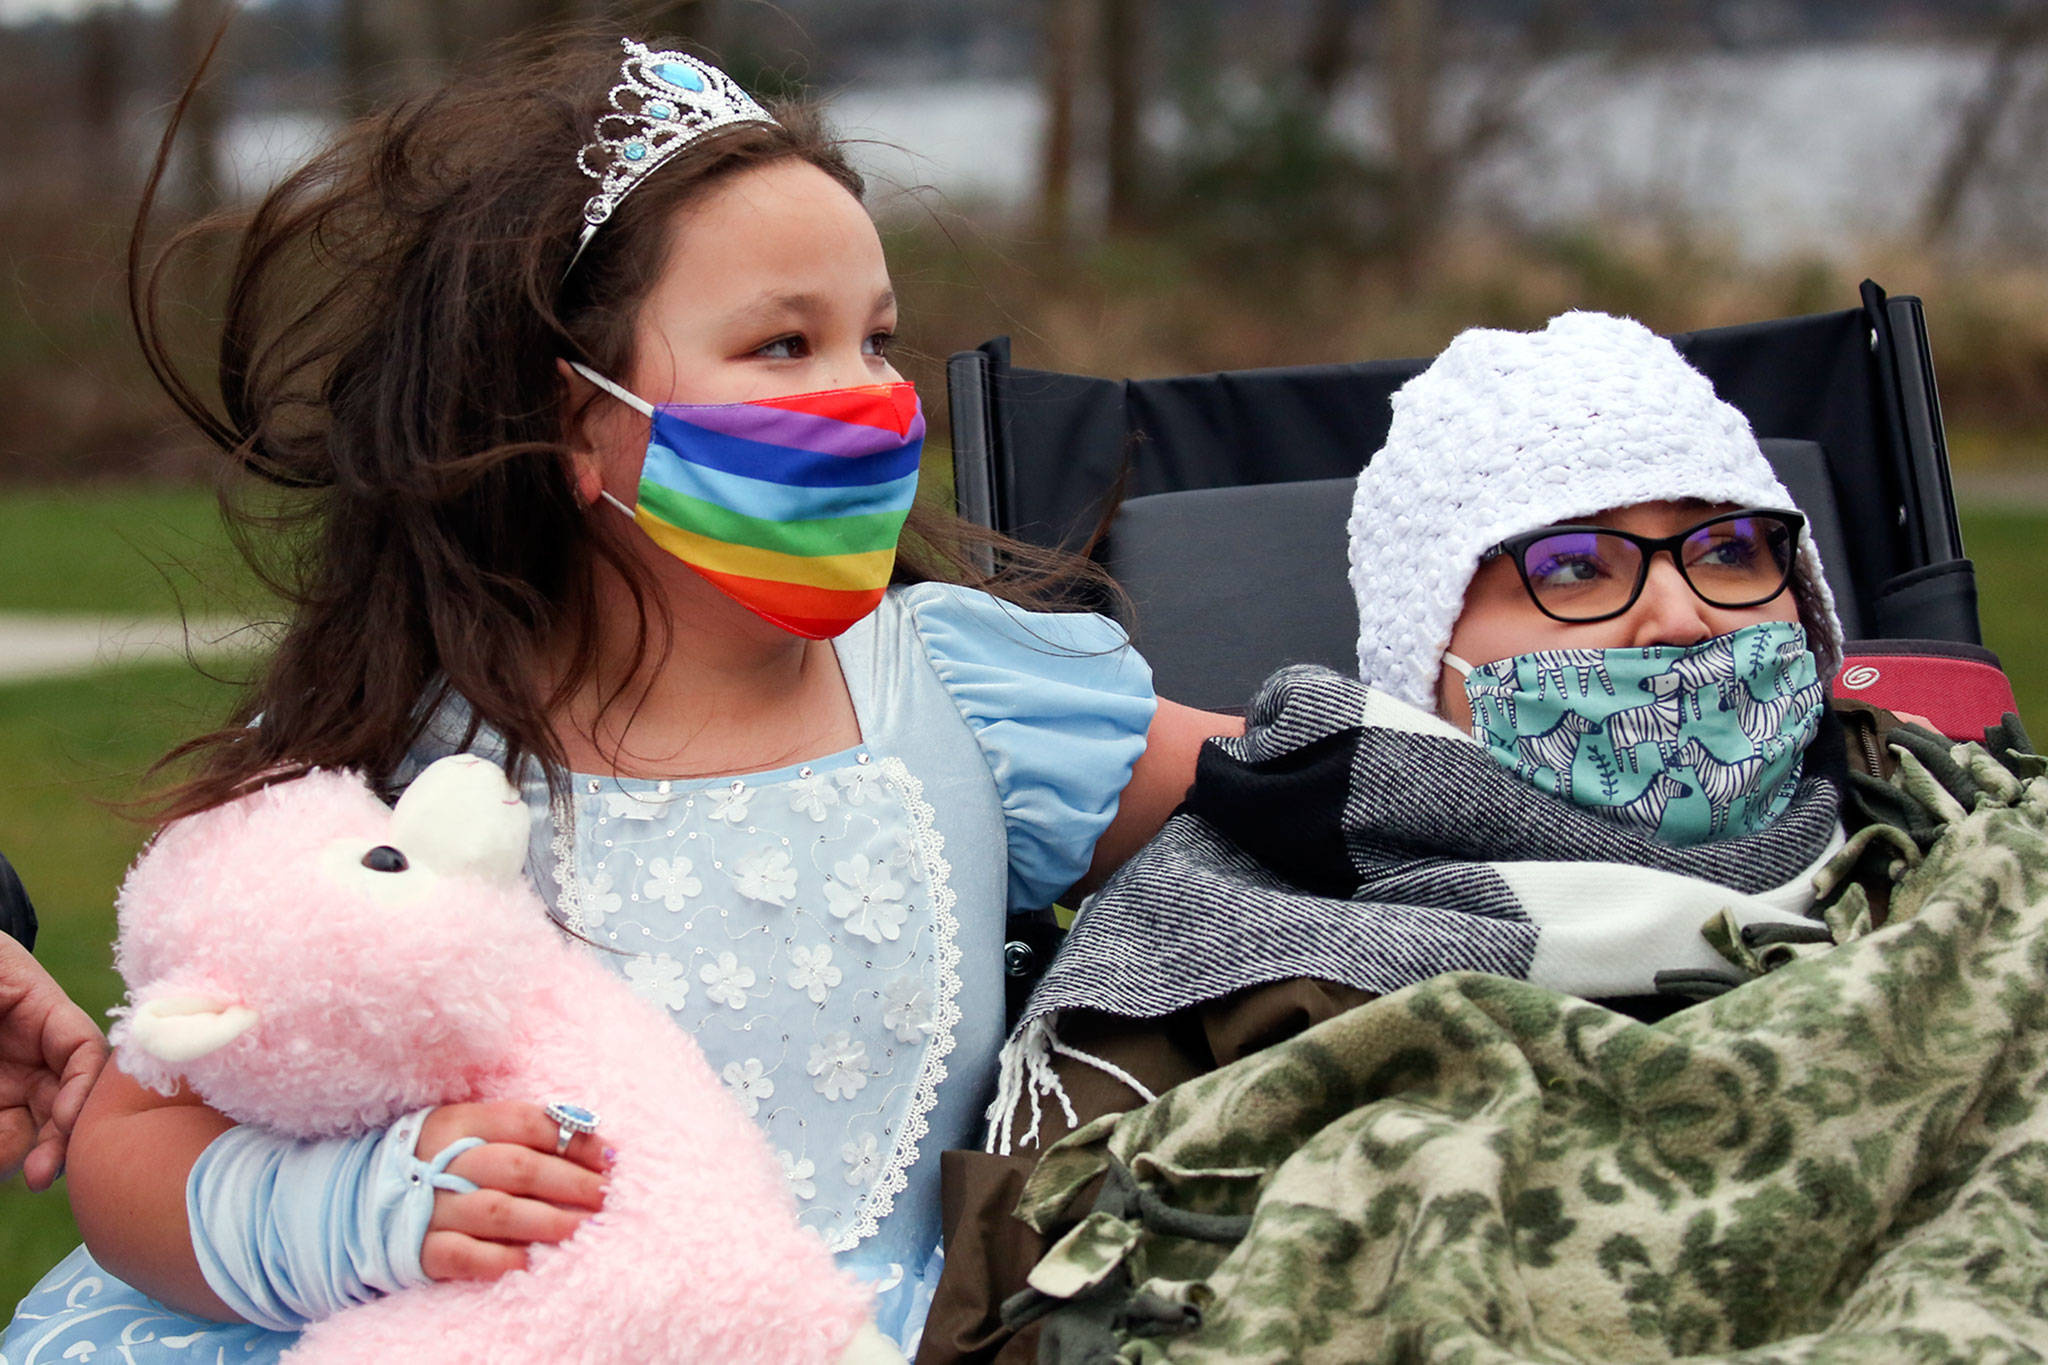 Madelynne Erickson (left) with her mother Bethany Erickson during a fundraiser at Lundeen Park in Lake Stevens on March 6. (Kevin Clark / The Herald)